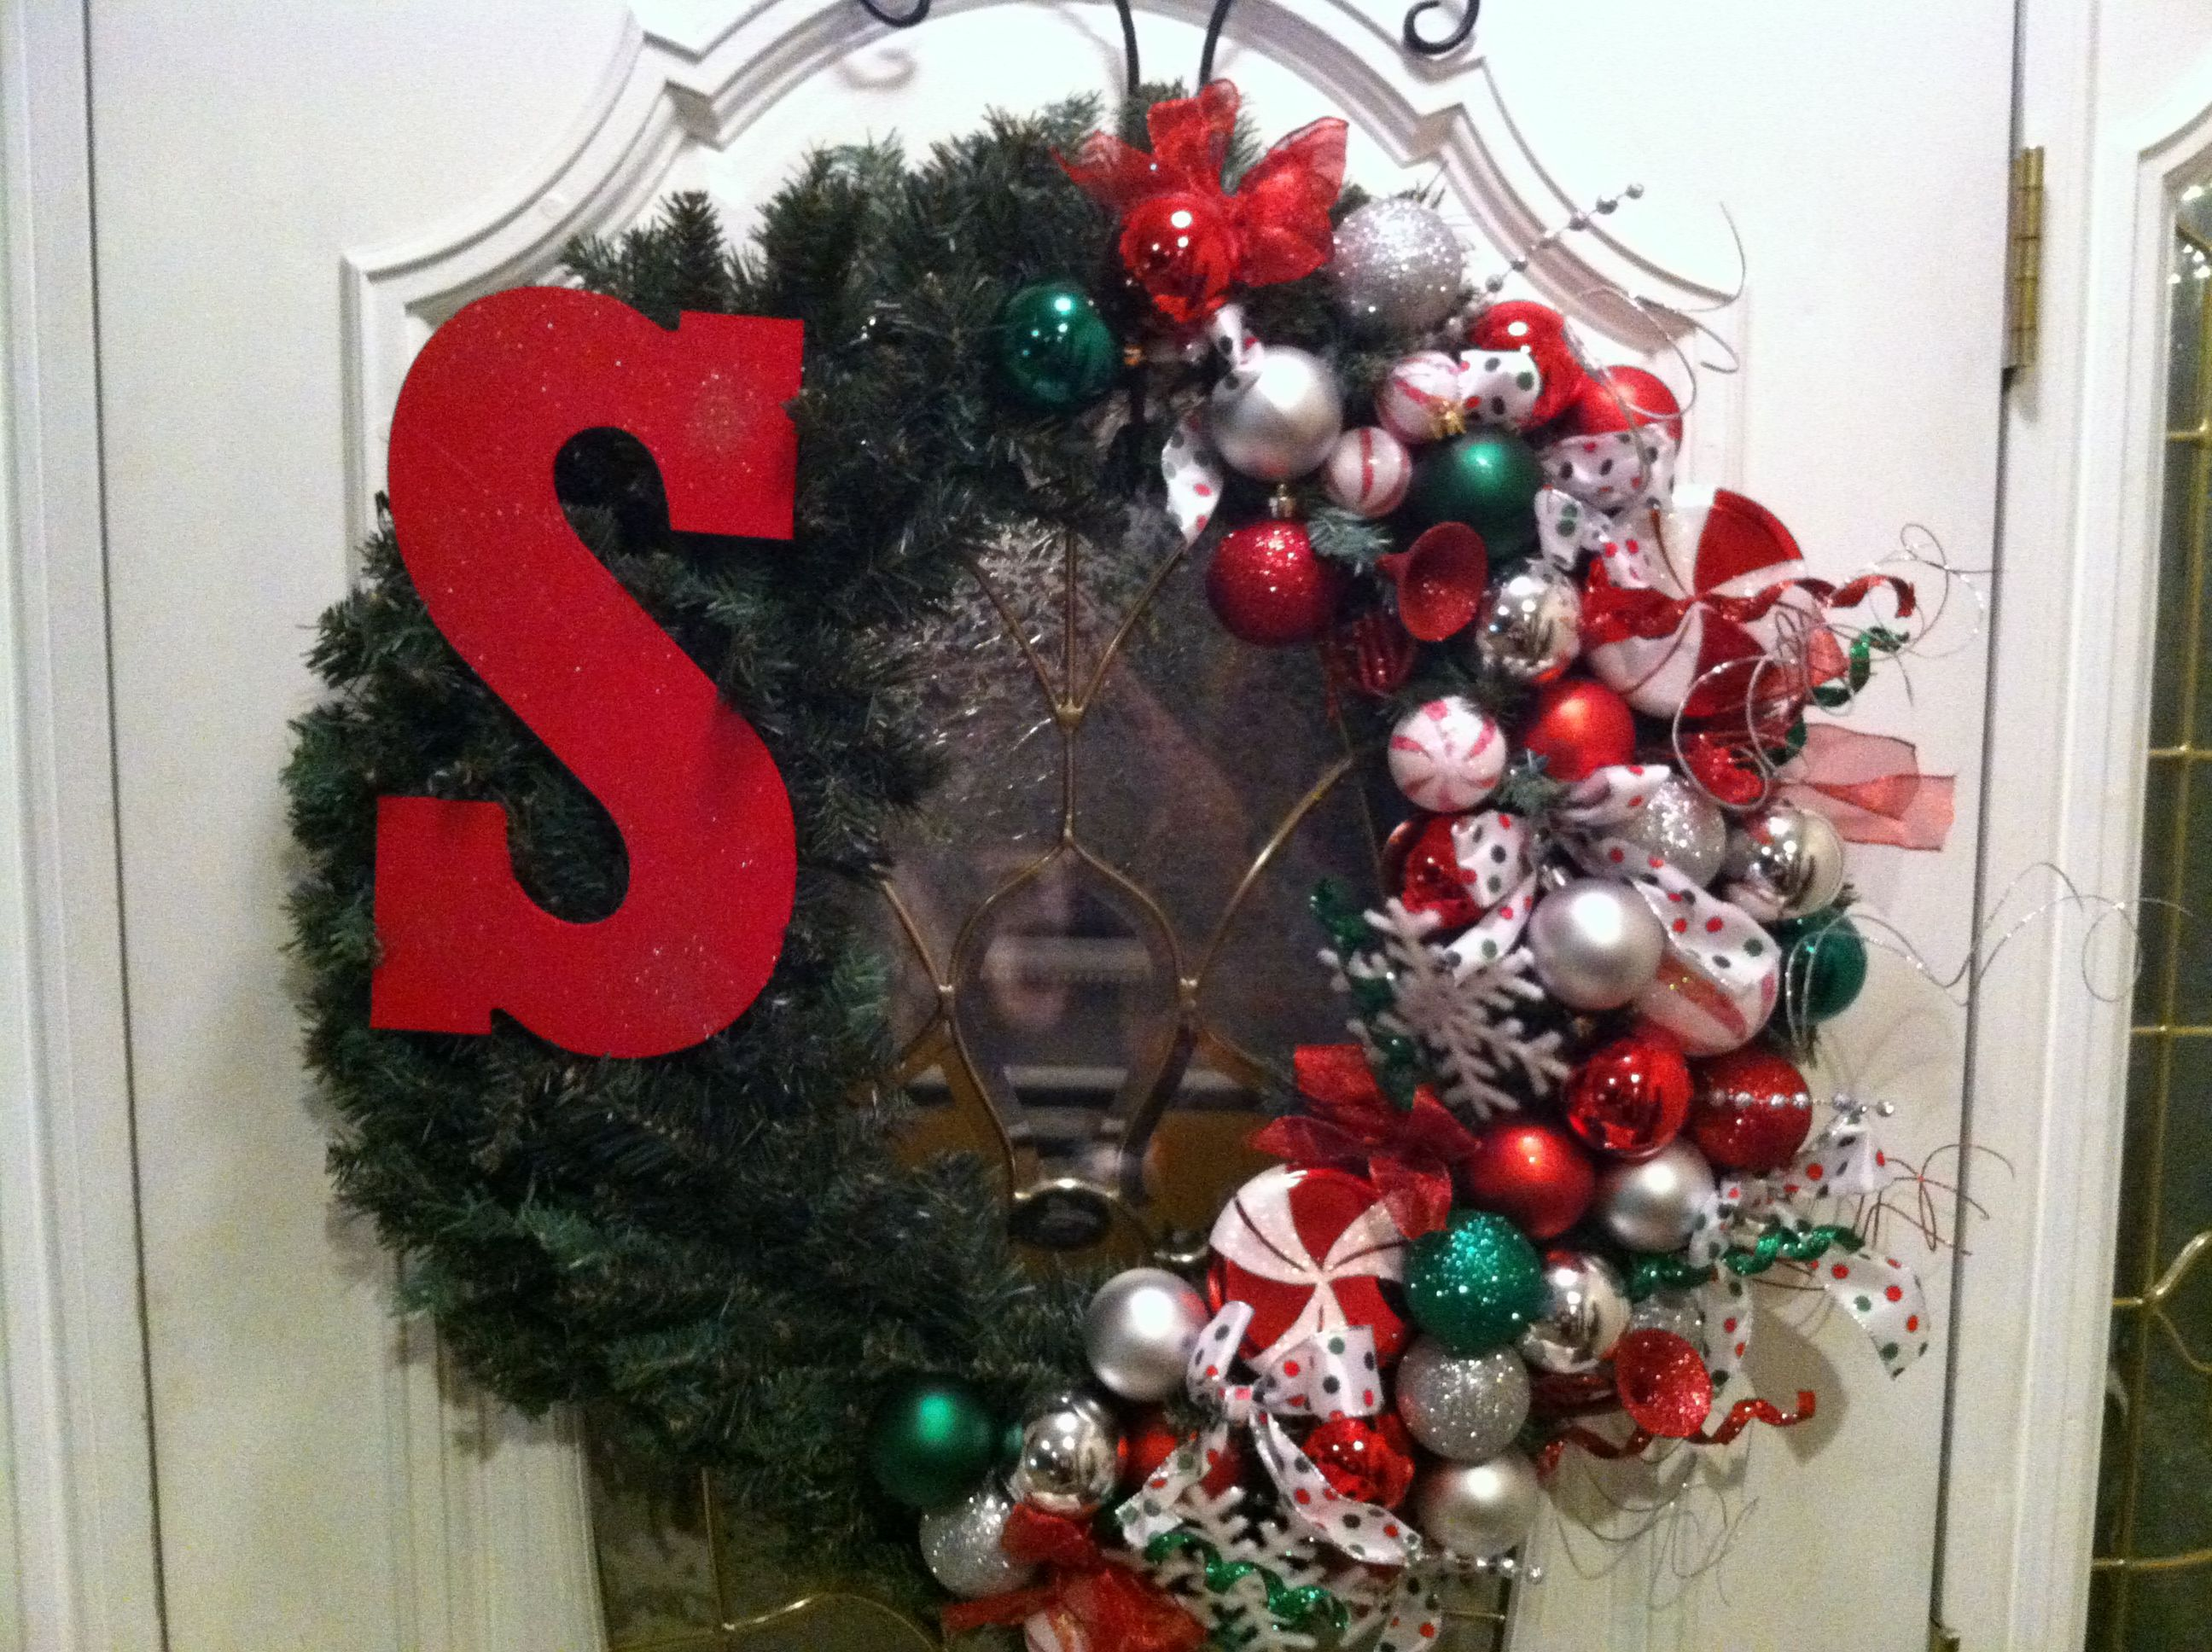 My 2012 Christmas Wreath    Made multiple similar wreaths & will be giving them as gifts to family members :)